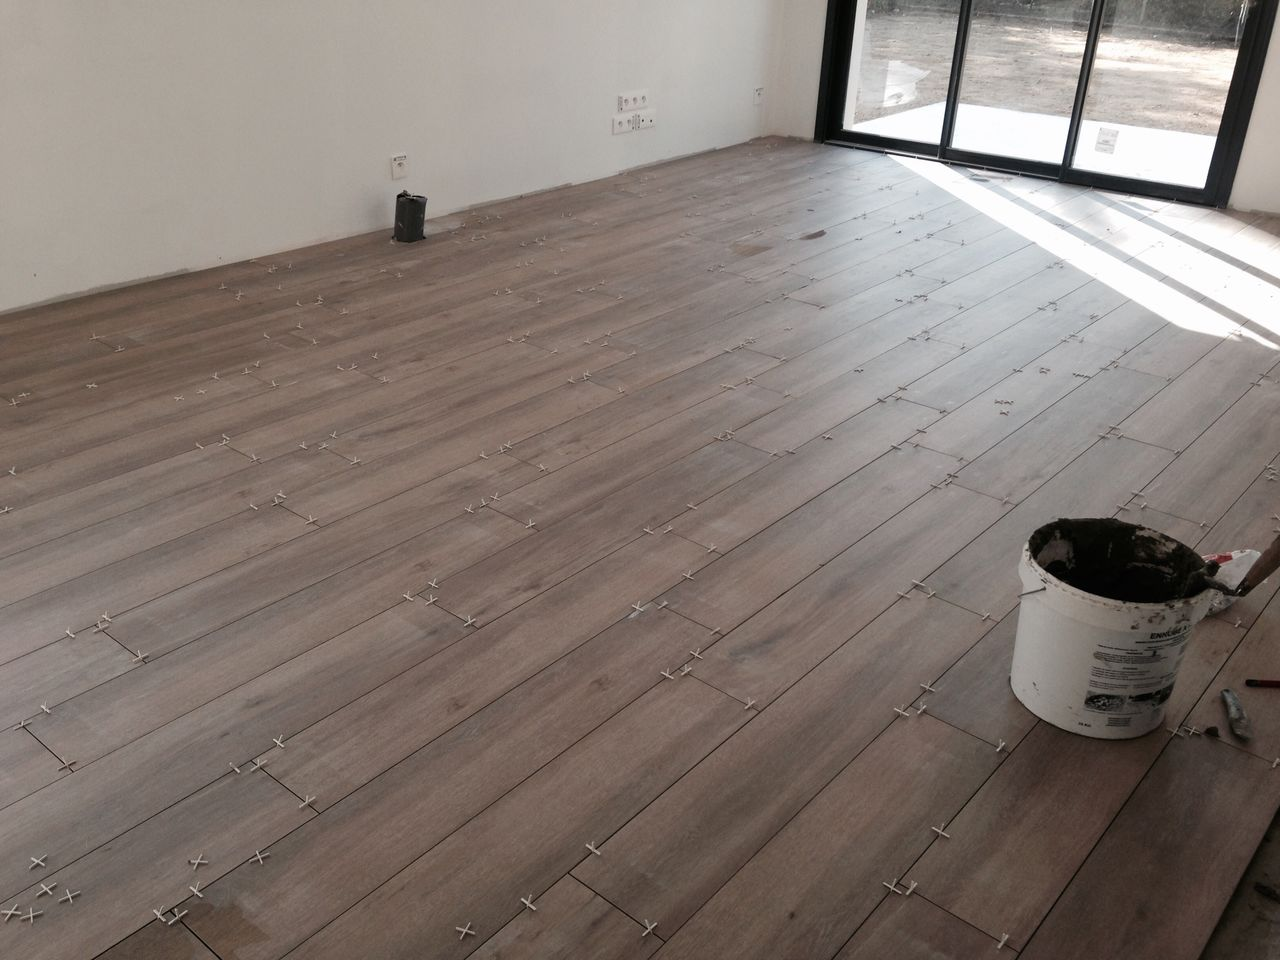 Quelle couleur de joints pour carrelage imitation parquet 4 messages - Salon carrelage imitation parquet ...